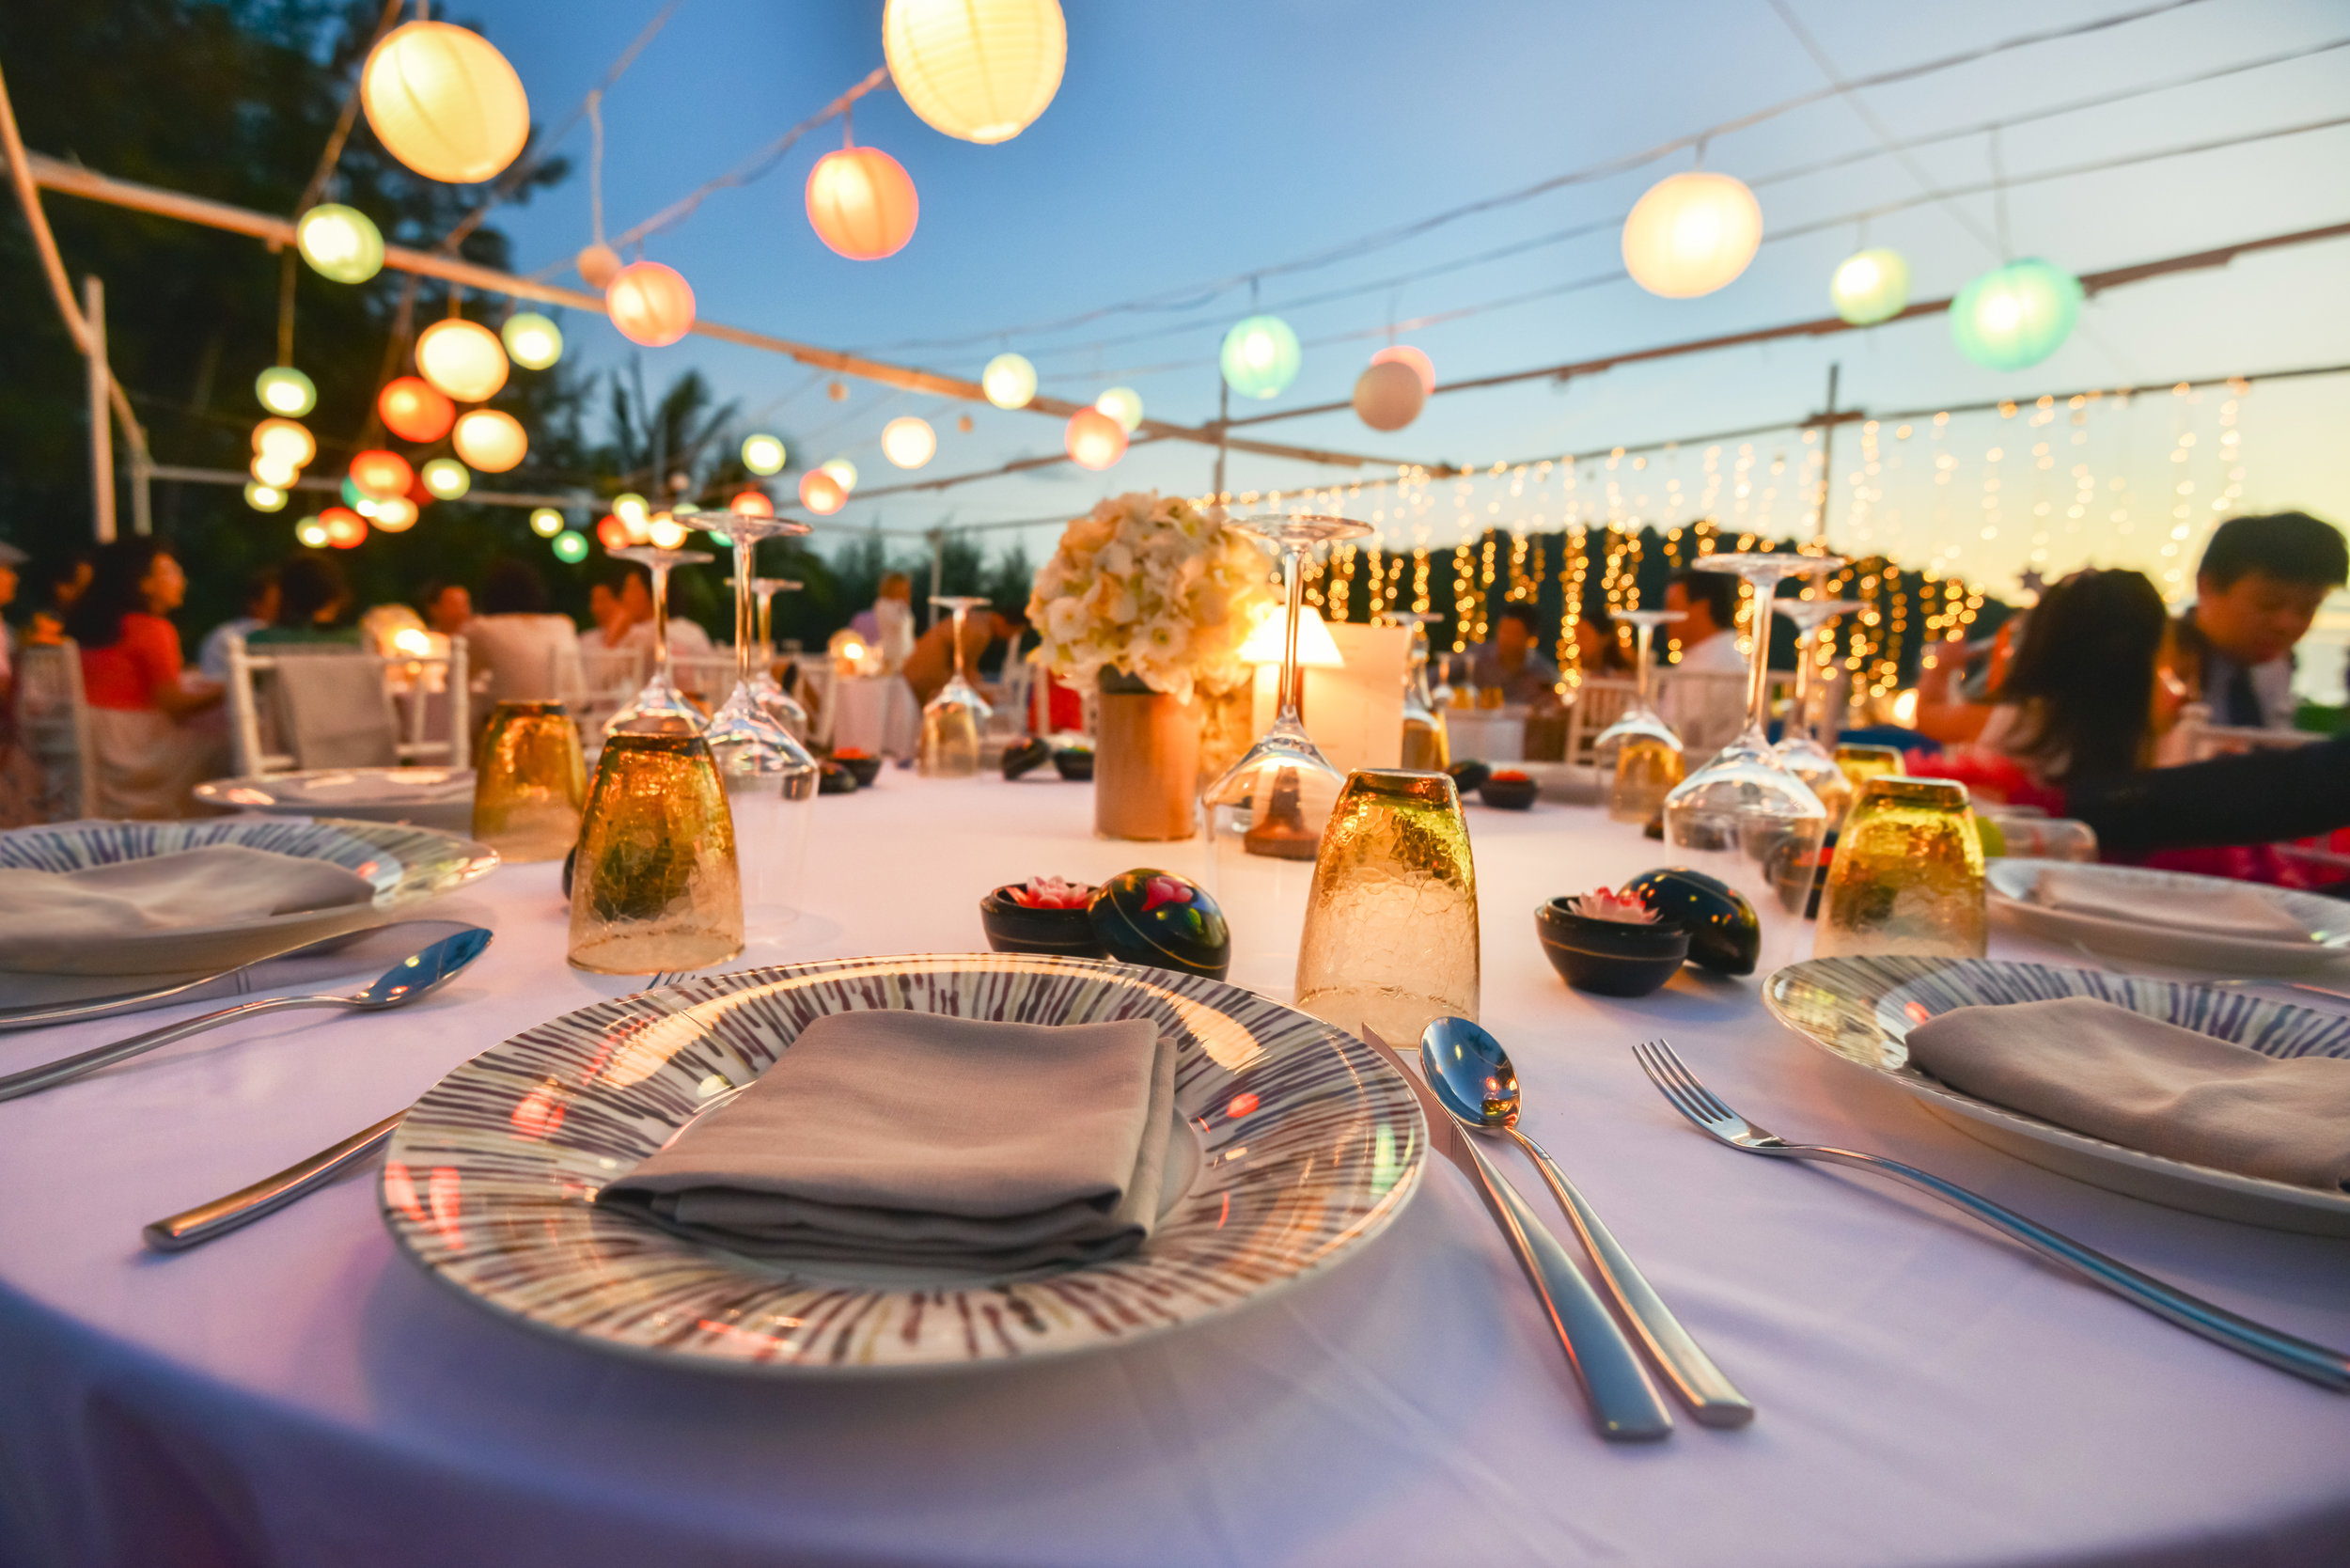 RENTALS & DESIGN - The hardest part about planning an event is knowing how much of everything you need. Our software automatically suggests quantities for everything based on the events guest count & duration. You'll never have to worry about how many forks to get again.